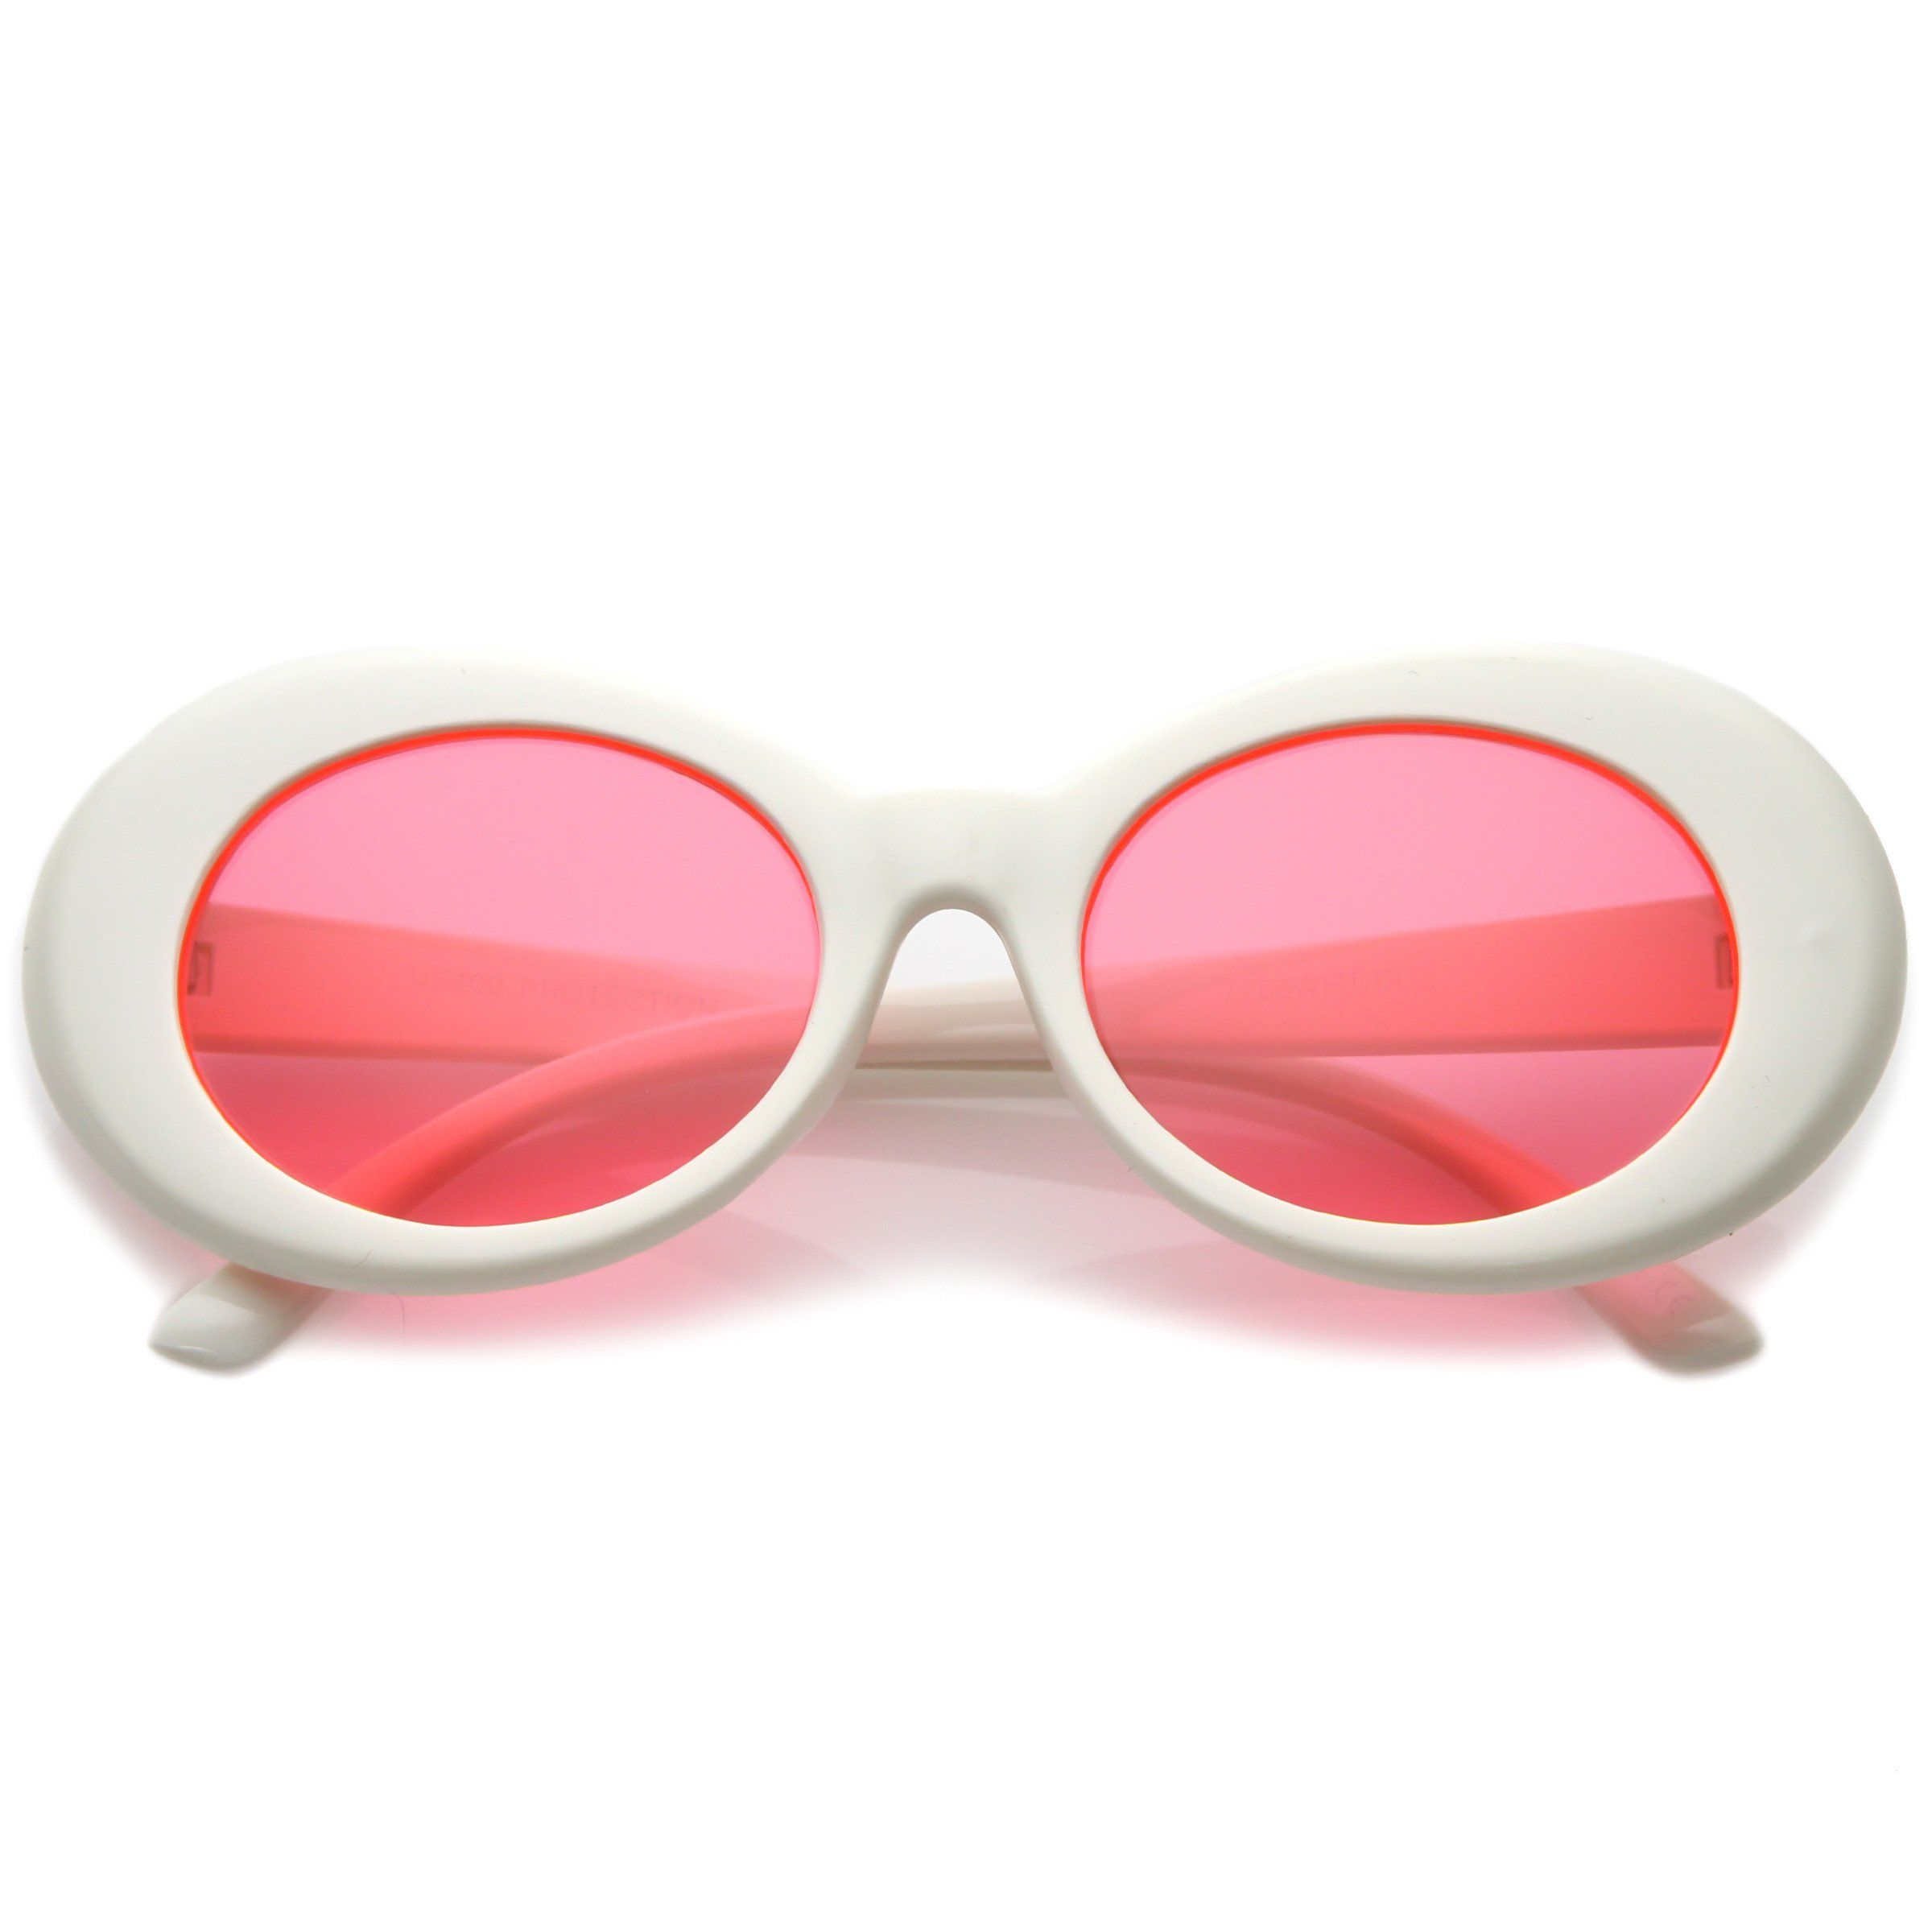 aa16c10aed Valley City X zeroUV Aubrey Oversize Cat Eye Sunglasses from zeroUV. Saved  to Hats Belts Glasses. Women s Retro Disco Oval Clout ...